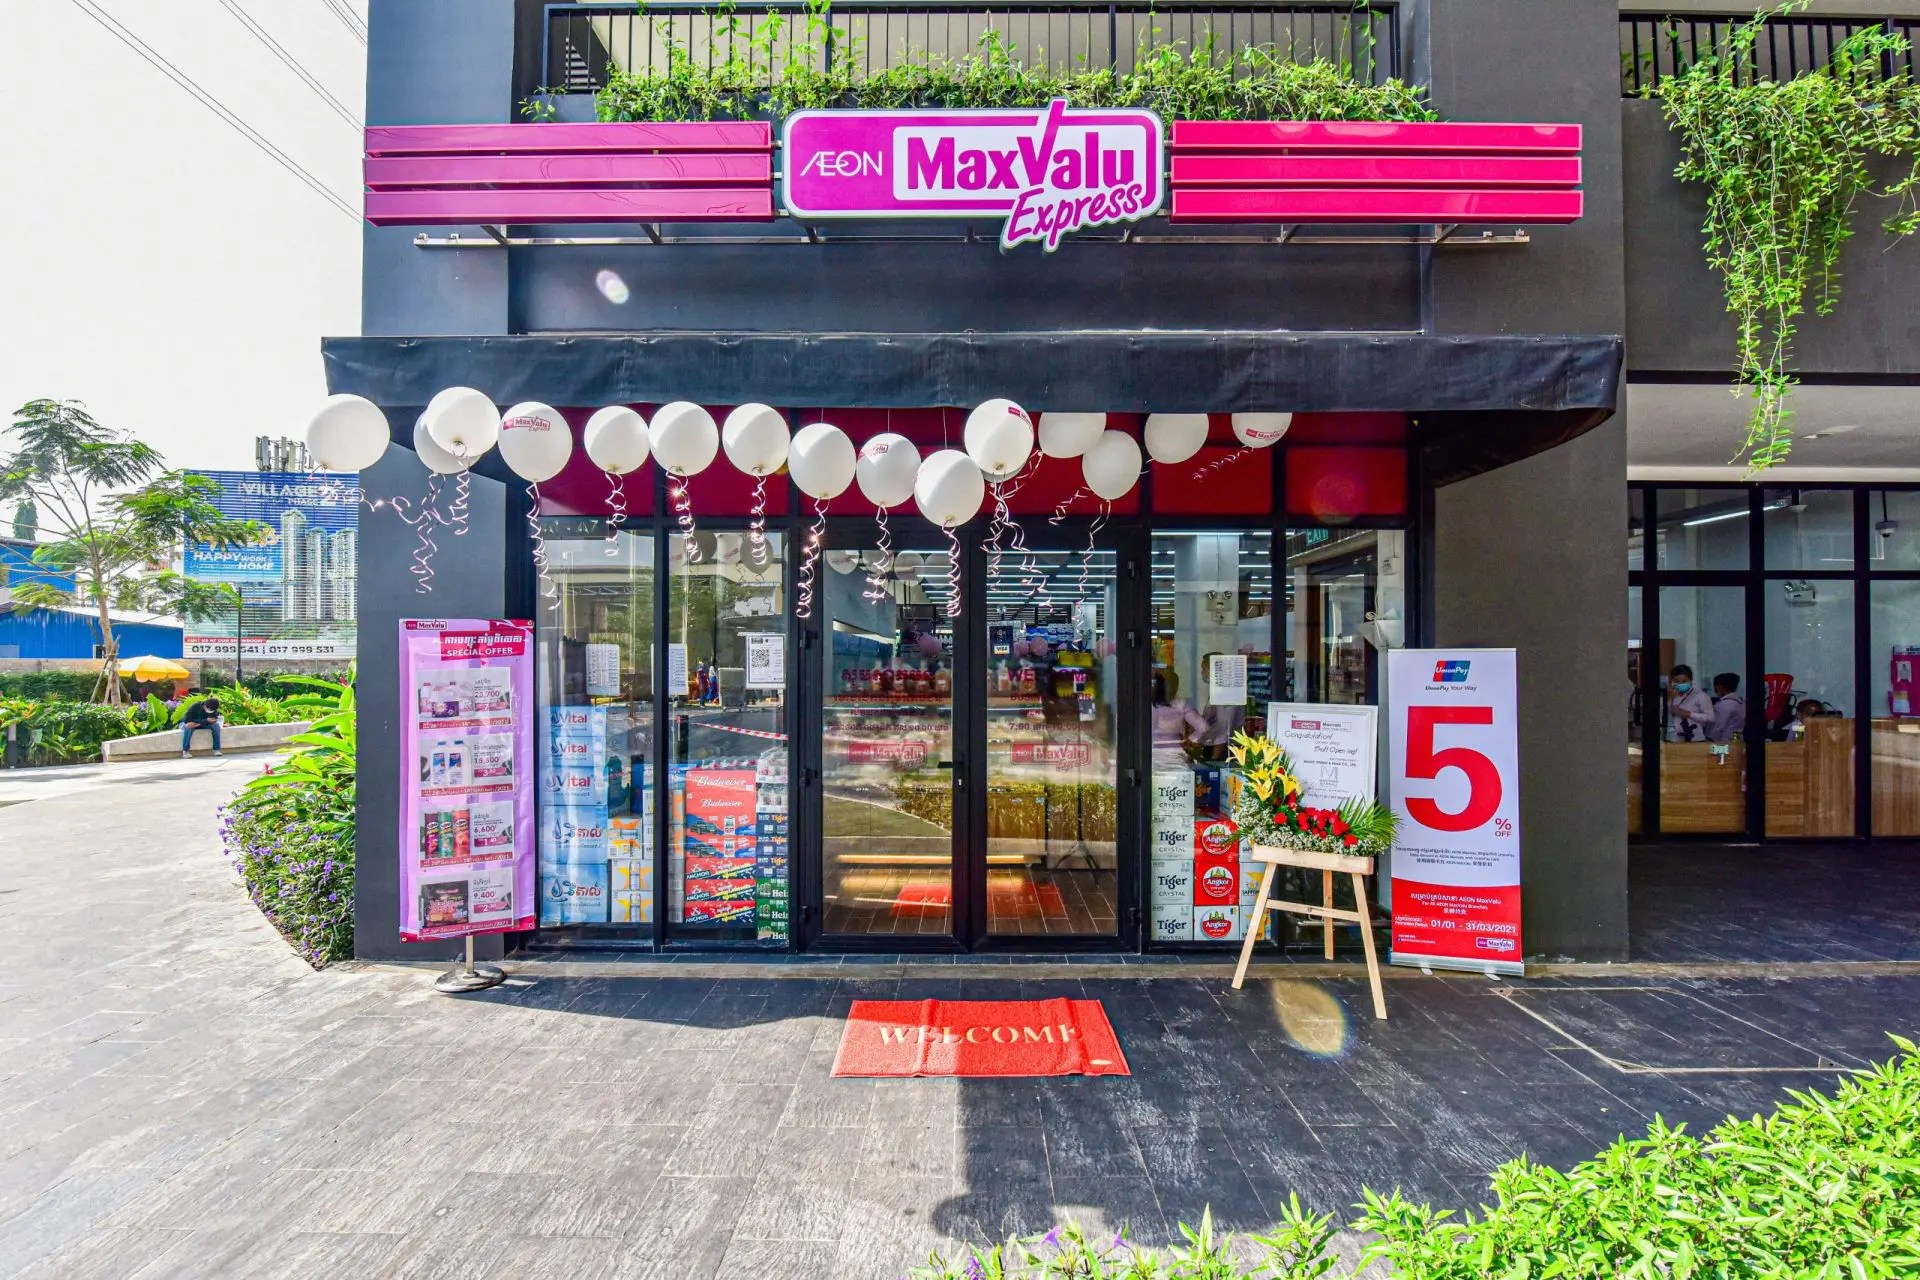 AEON MaxValu Express Cambodia Launched New Branch in Urban Village Phase 1